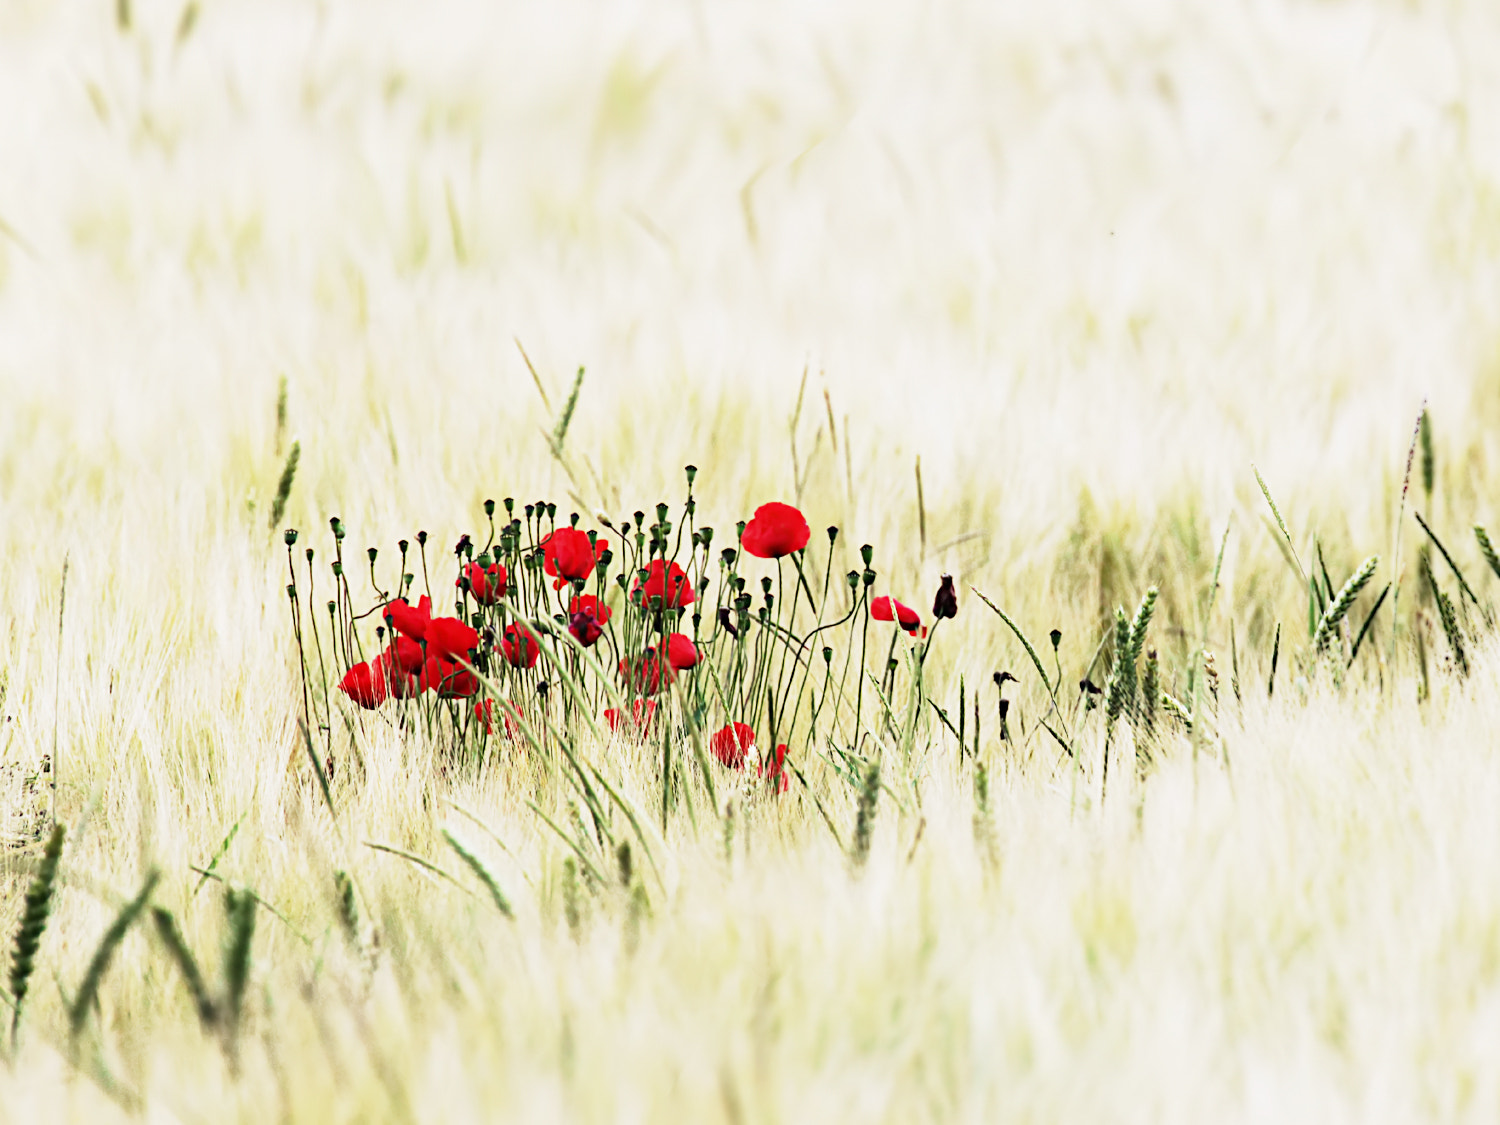 Photograph ...in the field by SuSanne MarX on 500px